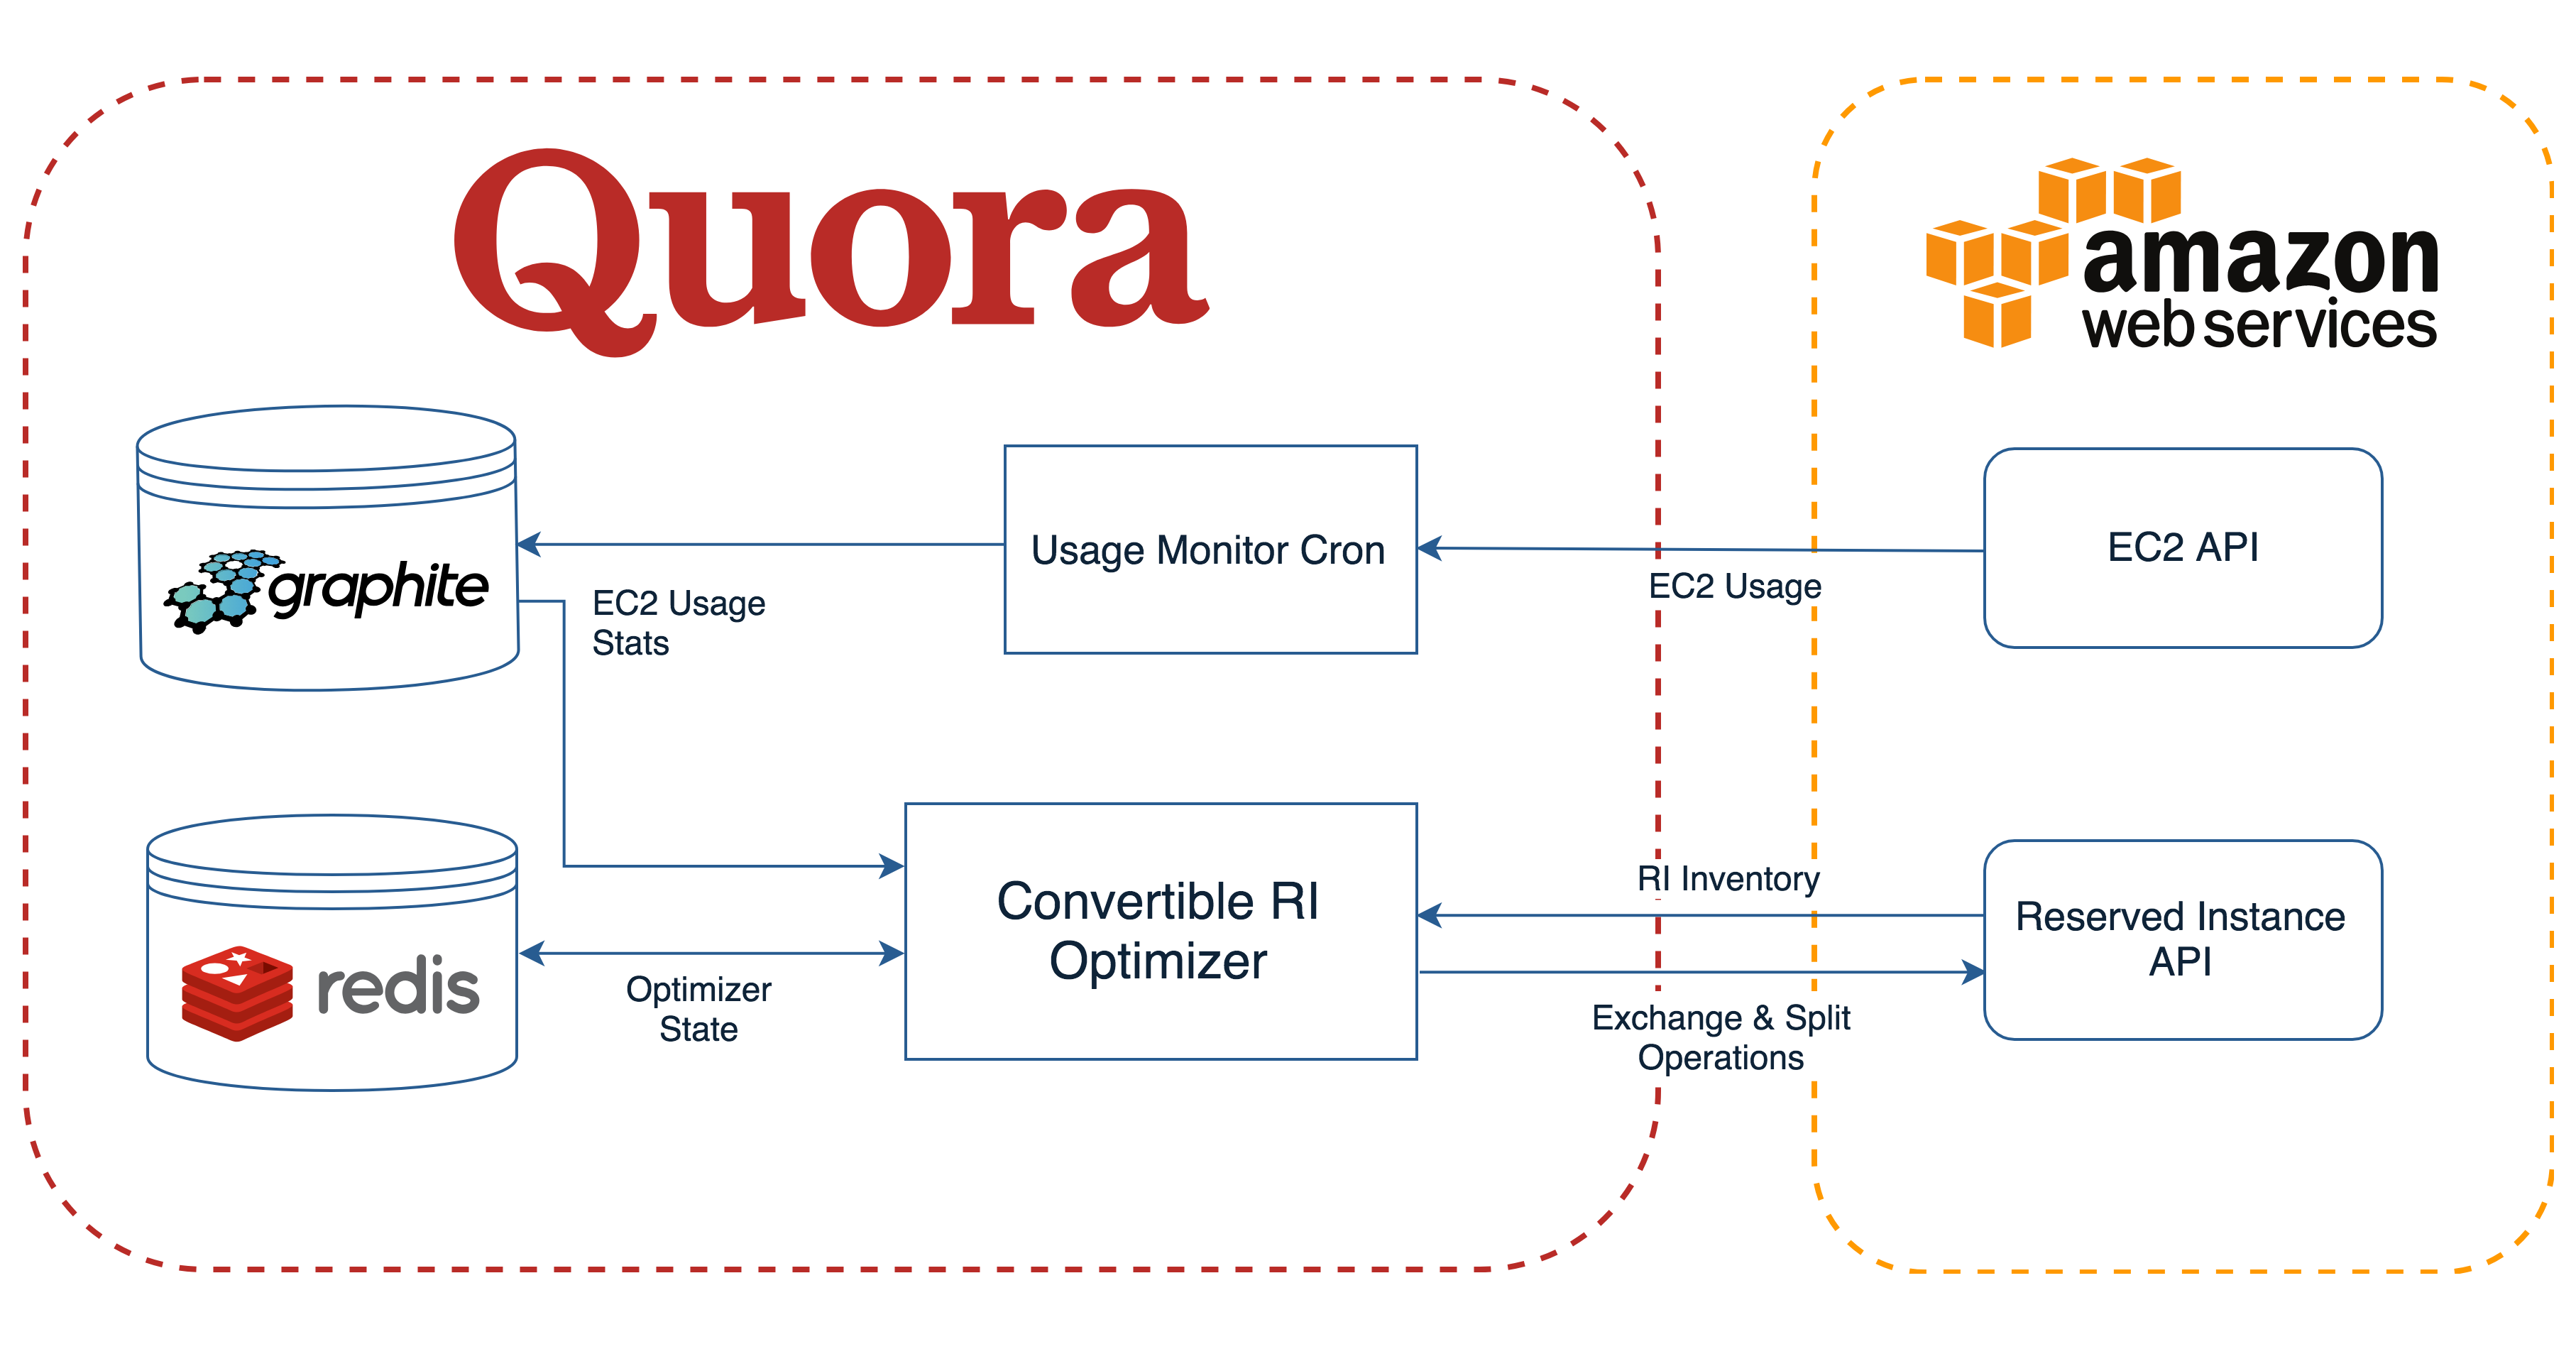 Engineering At Quora Download Image 8 Bit Decimal To Binary Converter Circuit Pc Android Finally We Need Handle Varying Expiration Dates As Well Introduce Idempotency Guarantees Make Sure Dont Decrease Our Coverage When Exchanging